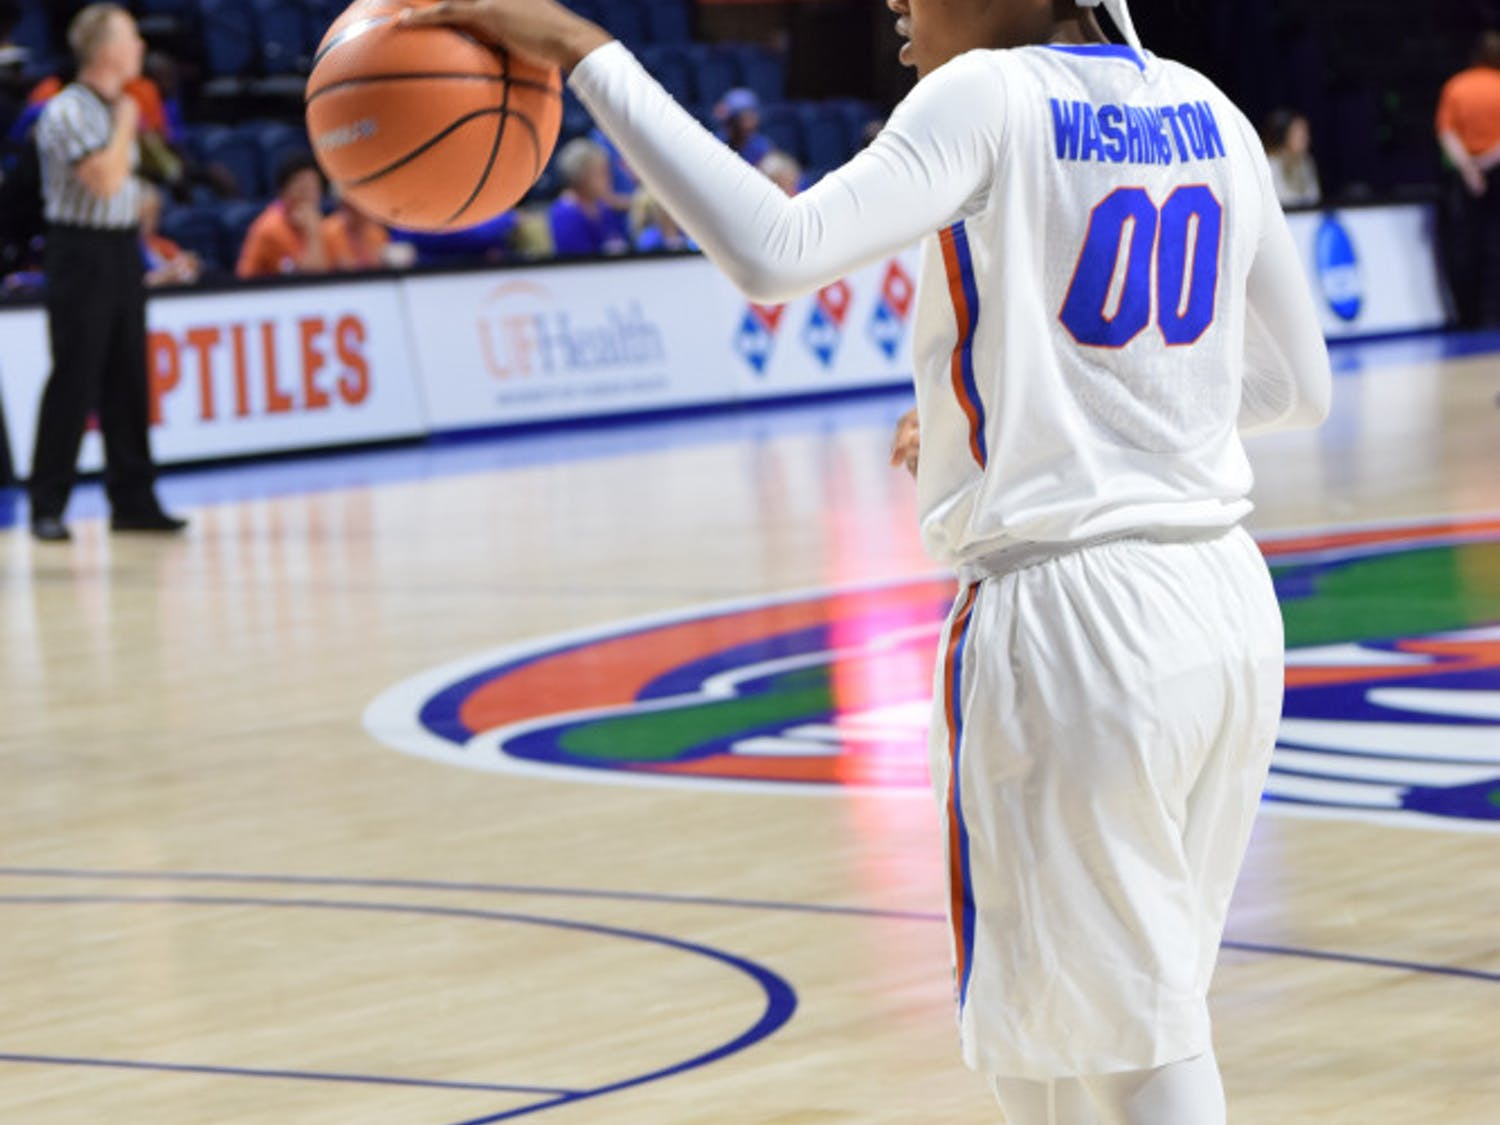 Coach Cameron Newbauer said UF has to do a better job passing and hauling in rebounds if it wants to beat No. 17 Florida State tonight at 7 at the O'Connell Center.